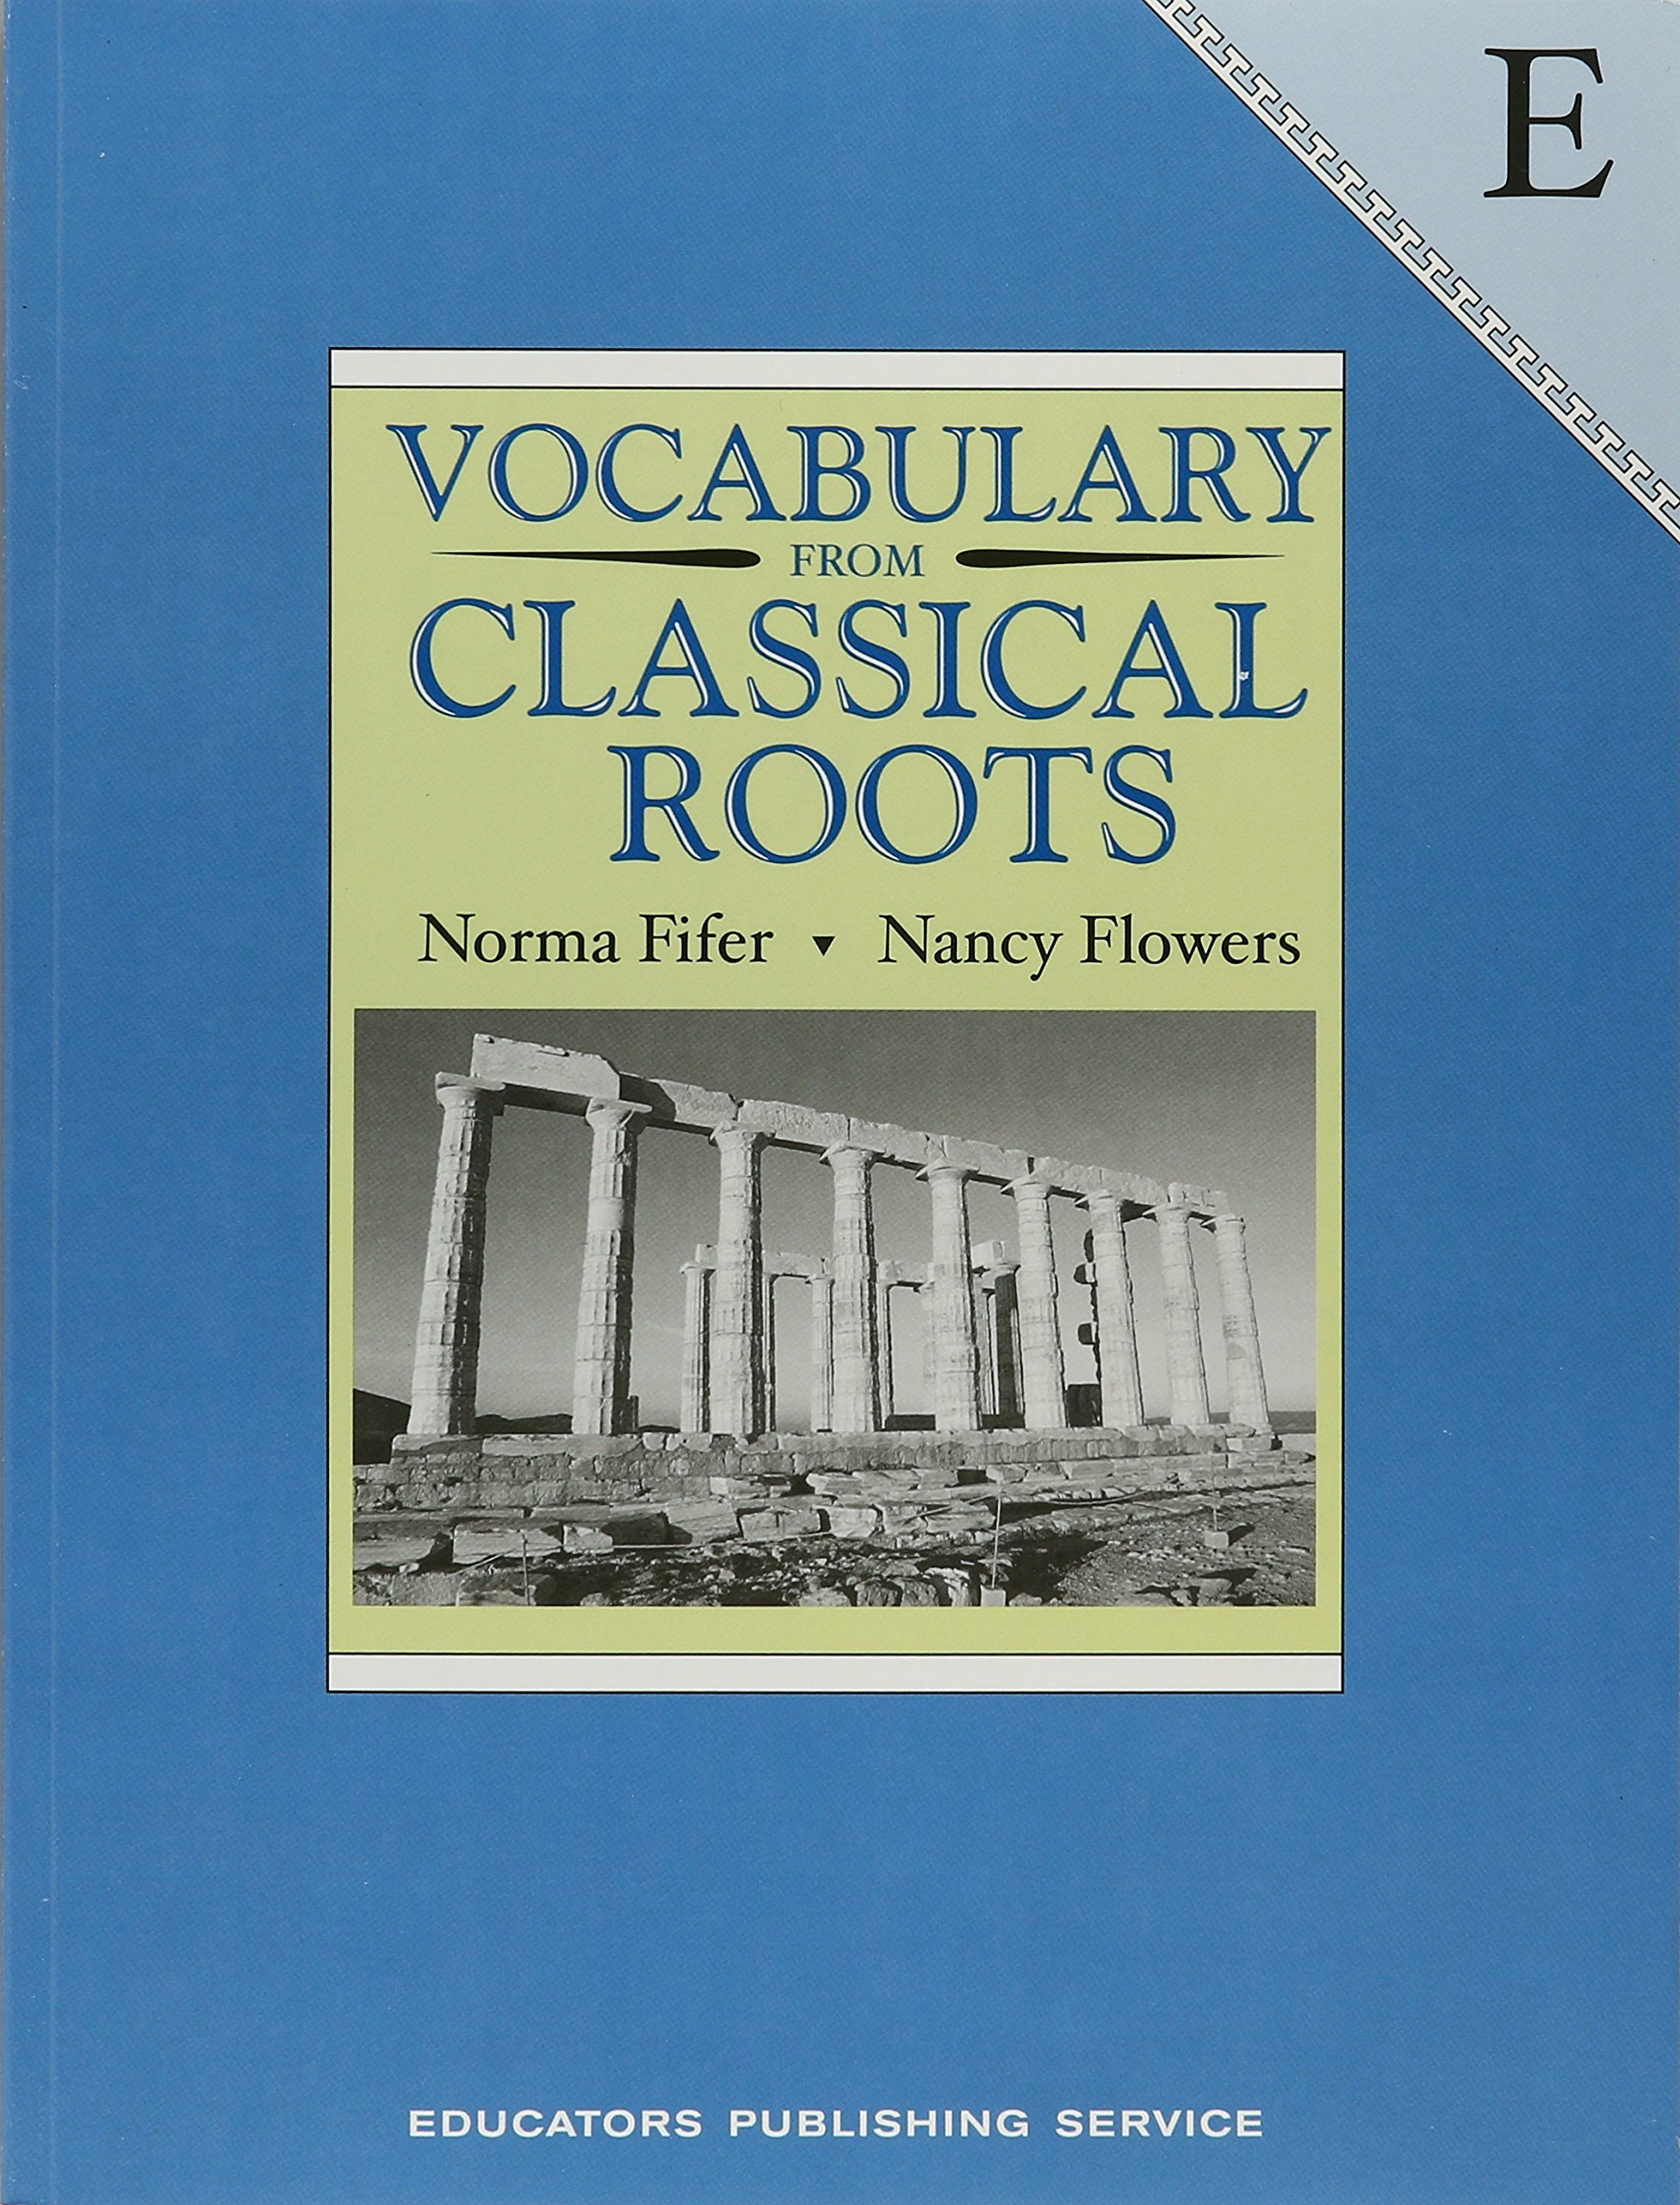 Amazon.com: Vocabulary from Classical Roots: Book E (9780838822609 ...